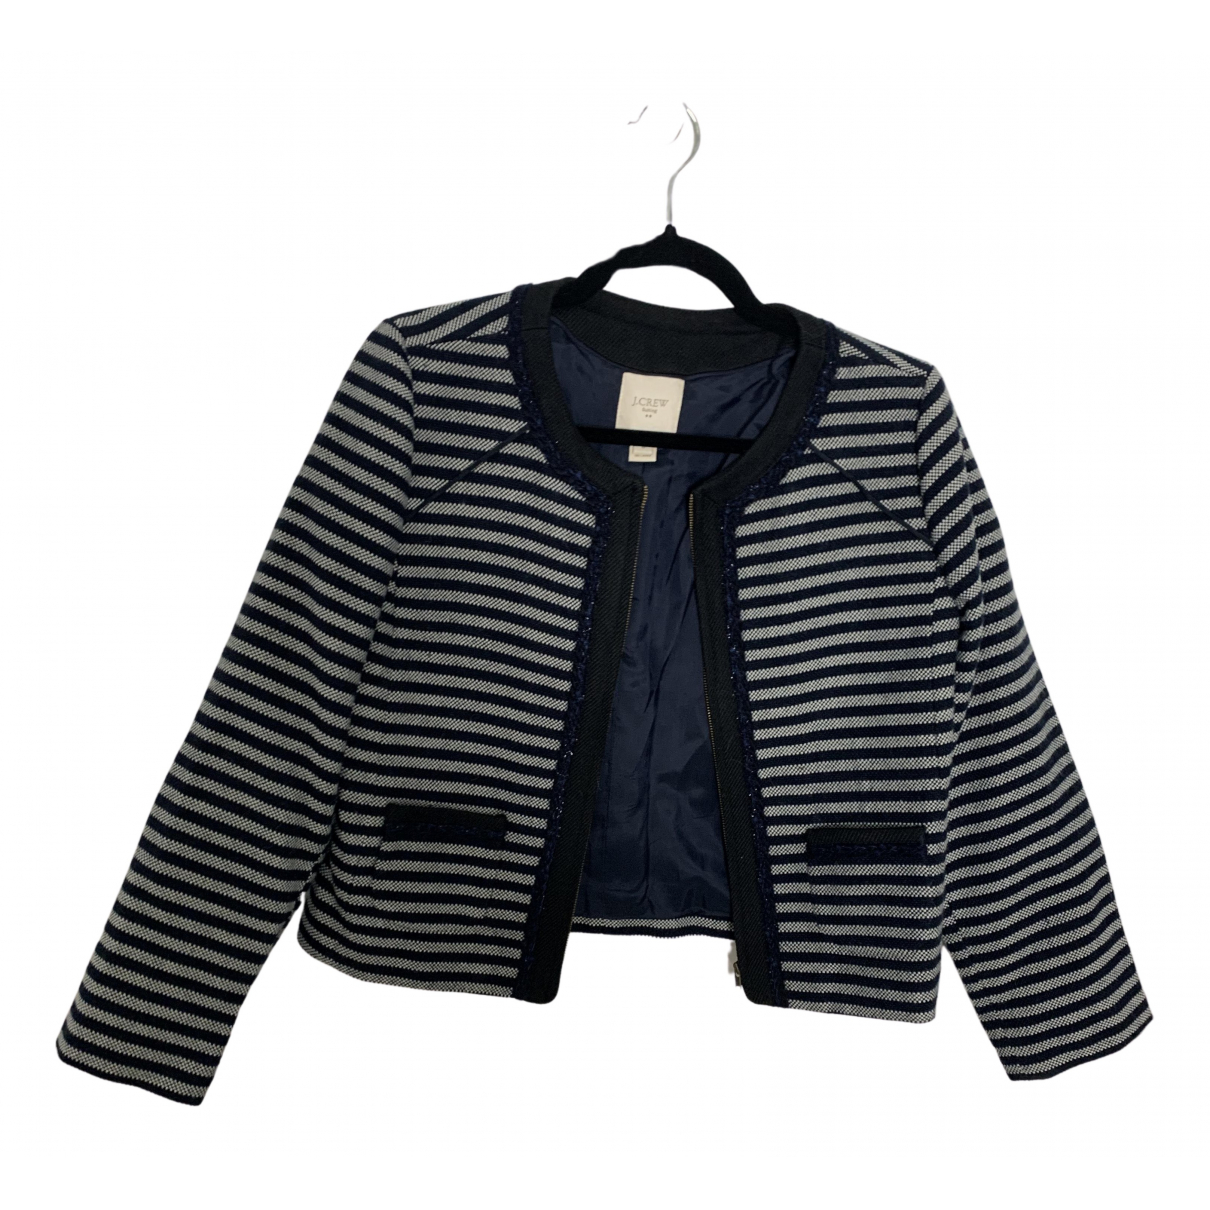 J.crew N Navy Wool jacket for Women 6 US